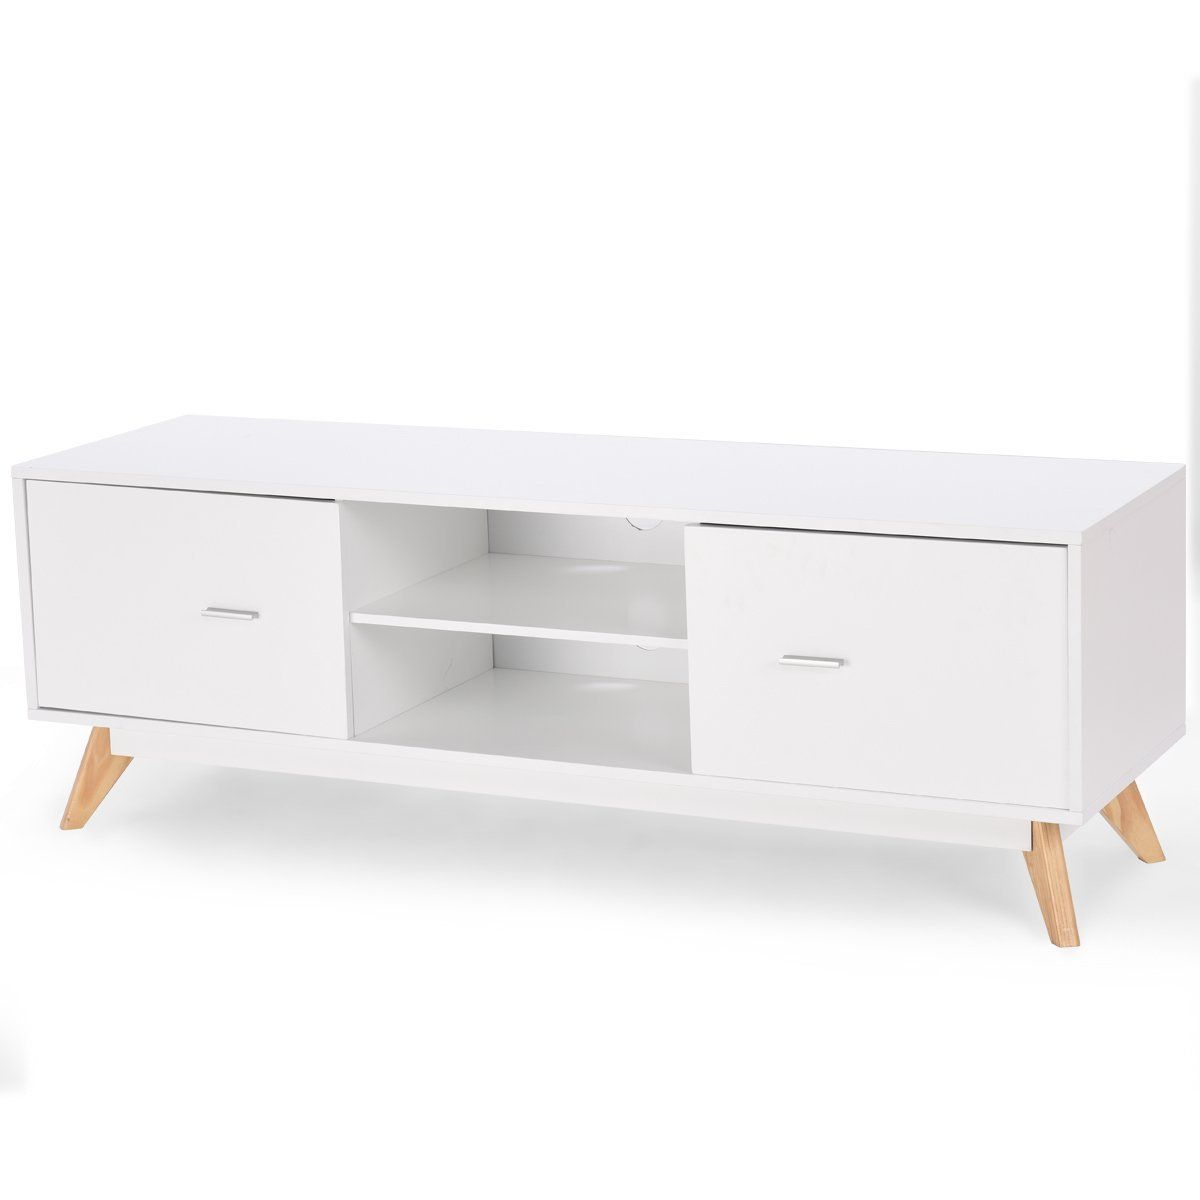 Modern White Console With Light Wood Legs Tv Stand And Entertainment Center Wood Furniture Living Room Tv Stand Luxury